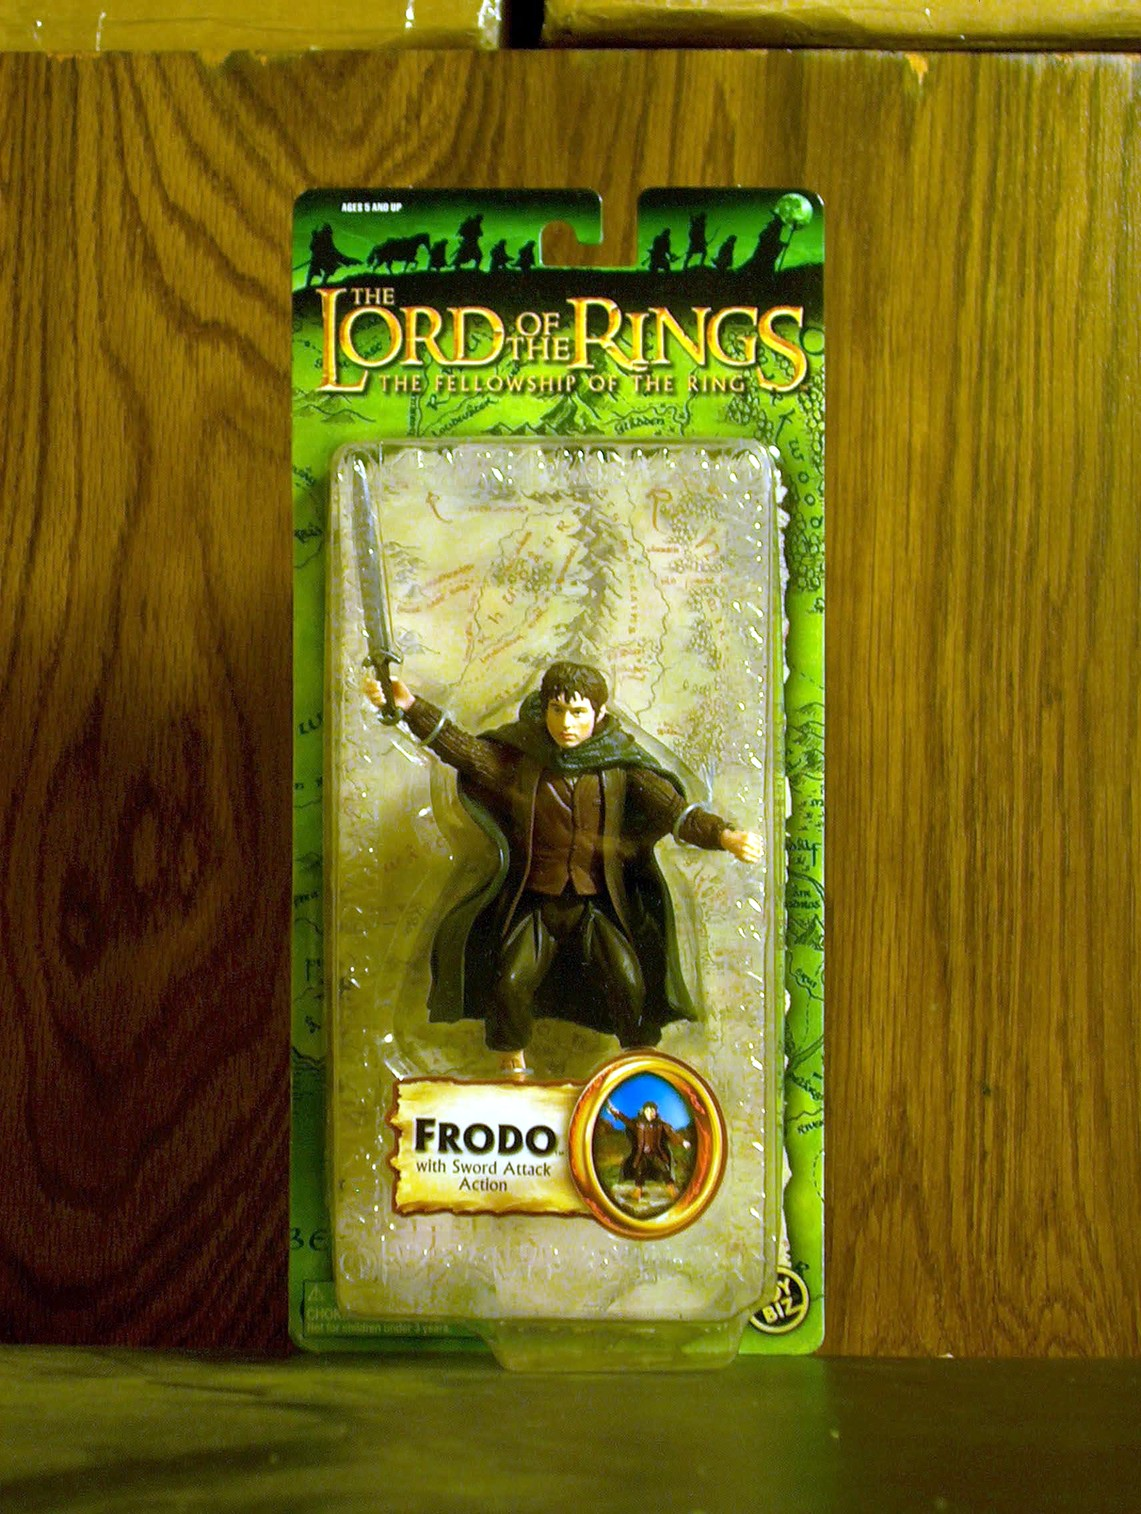 Frodo with Sword Attack Action